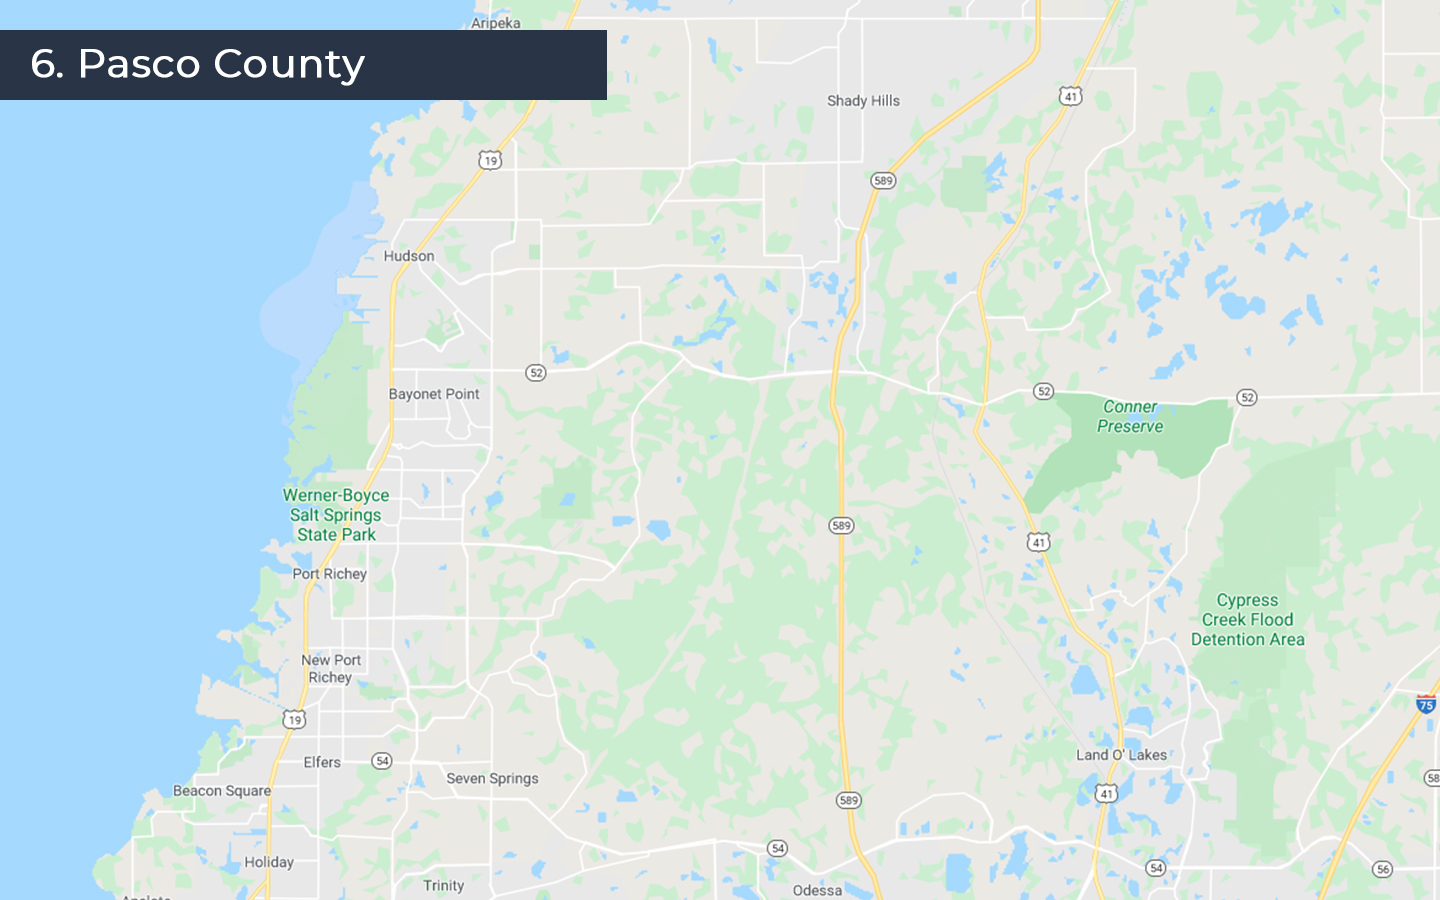 map of pasco county